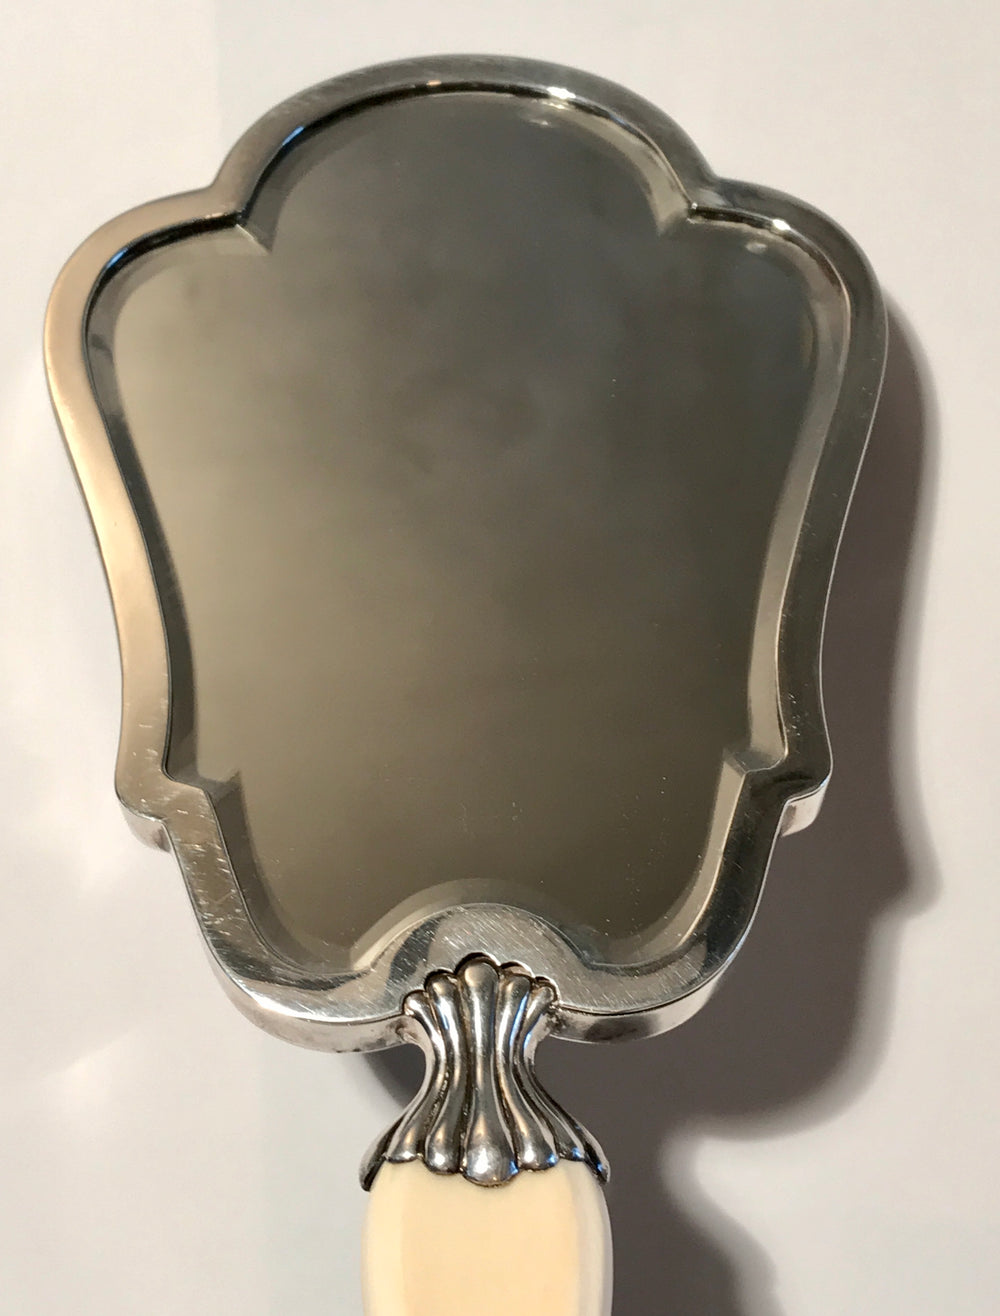 Very Elegant Italian silver and Ivory Hand Mirror, Fratelli Cacchione, Milan, Mid 20th century